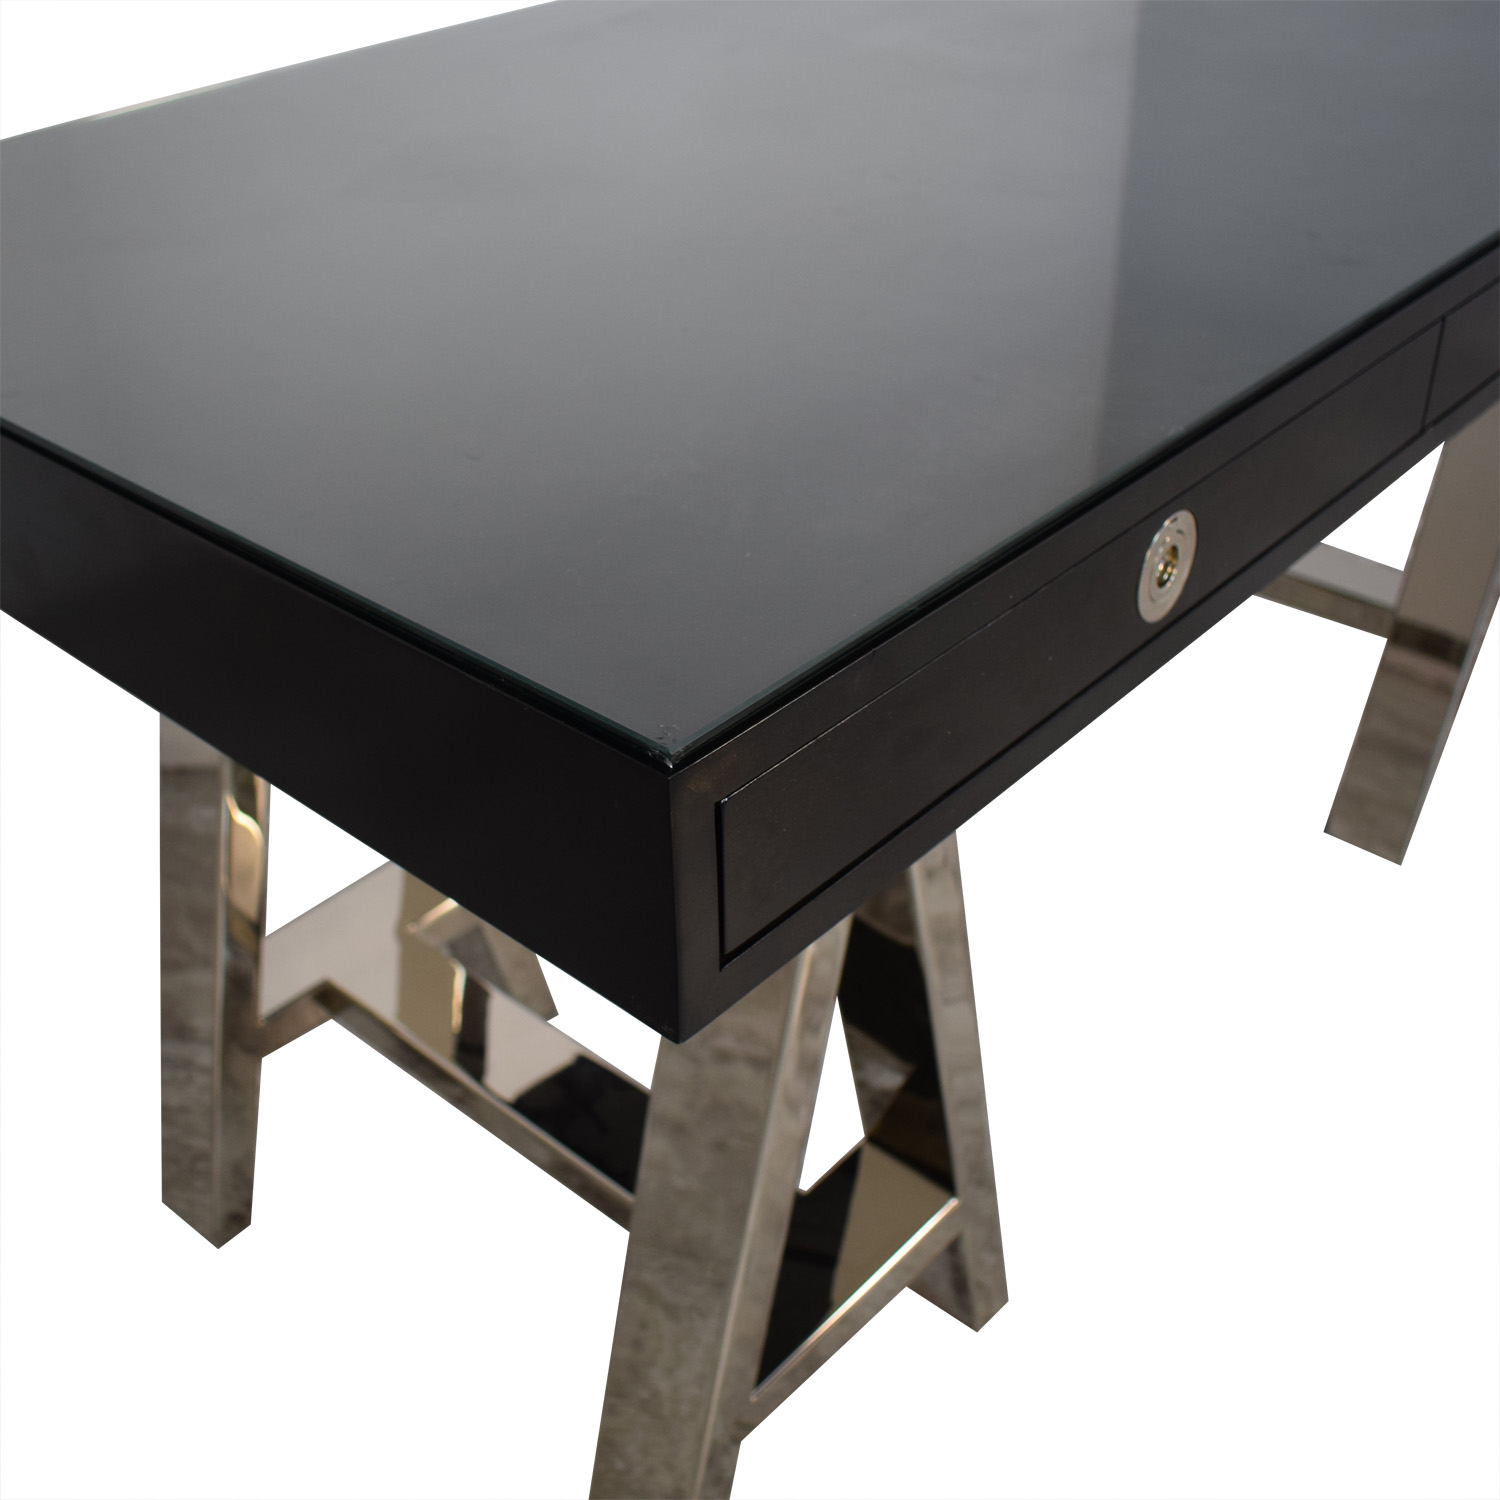 Williams Sonoma Mason Wood Top Desk / Tables